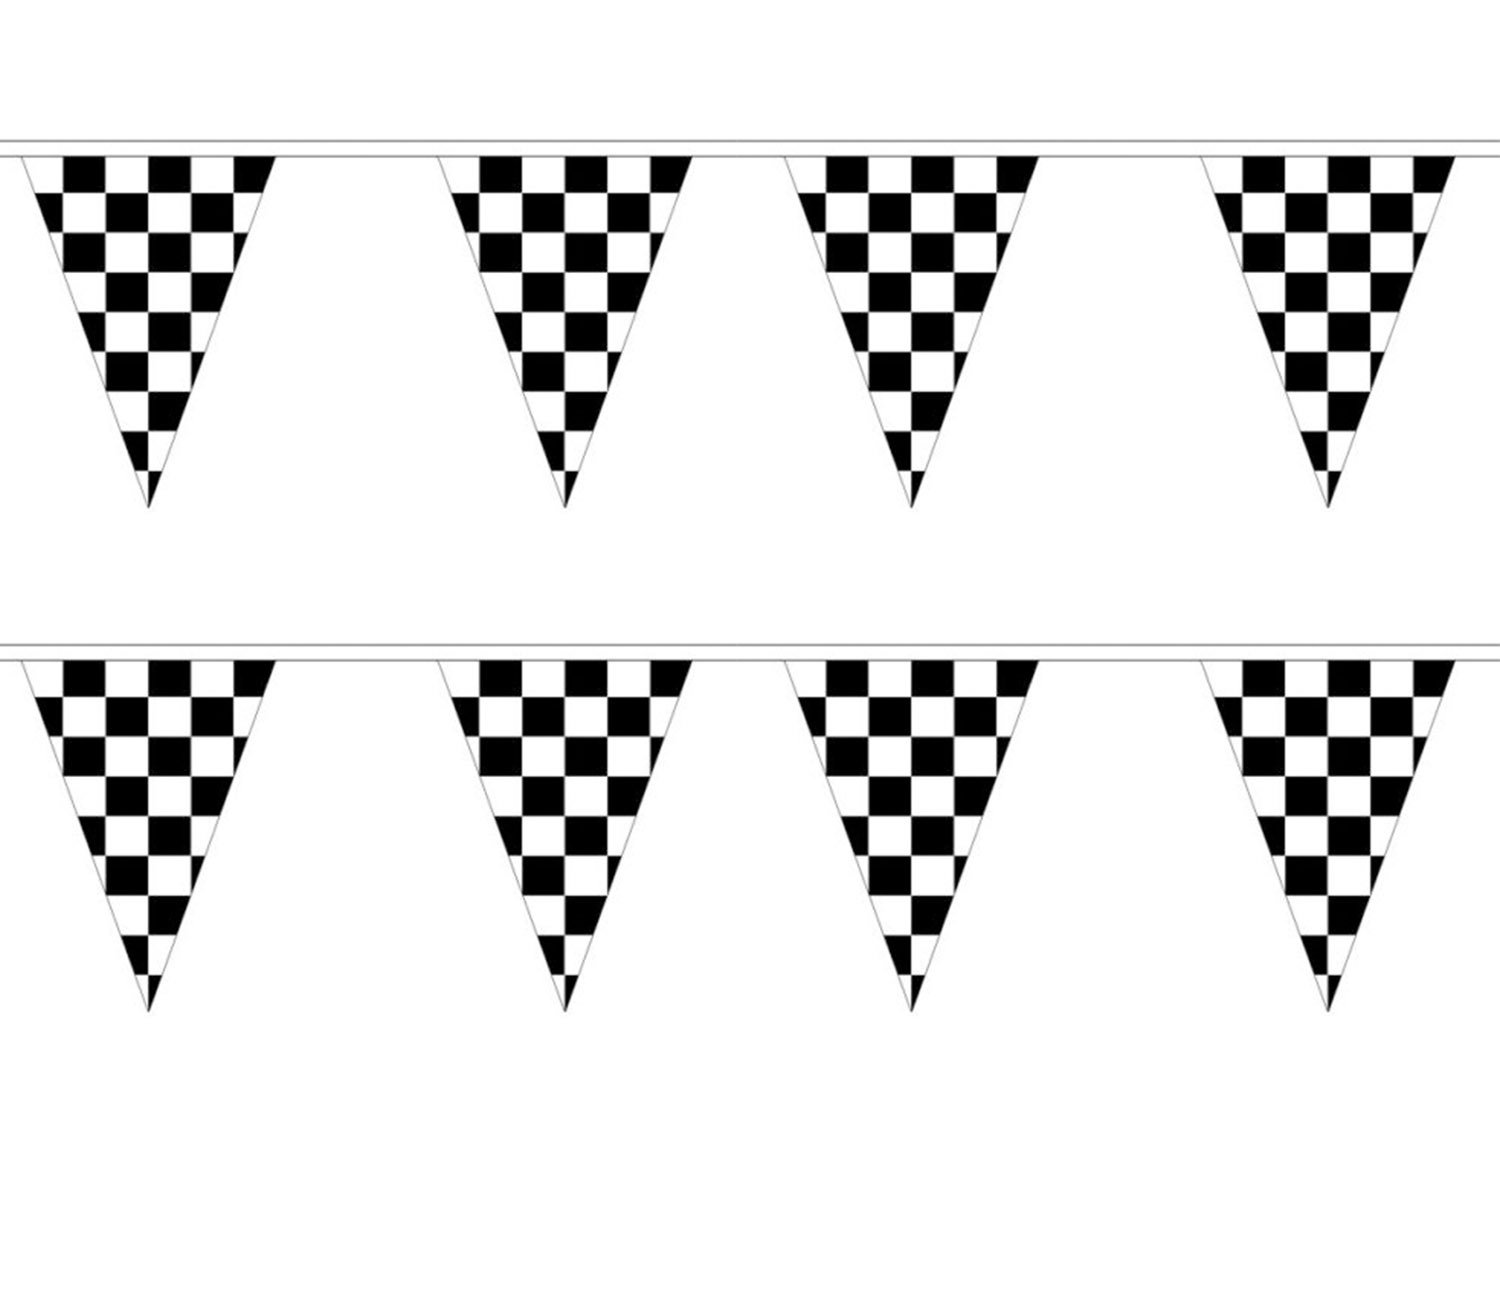 10m BLACK & WHITE CHEQUERED BUNTING FLAG 30CM x 20CM F1 RACING BANNER REDSTAR